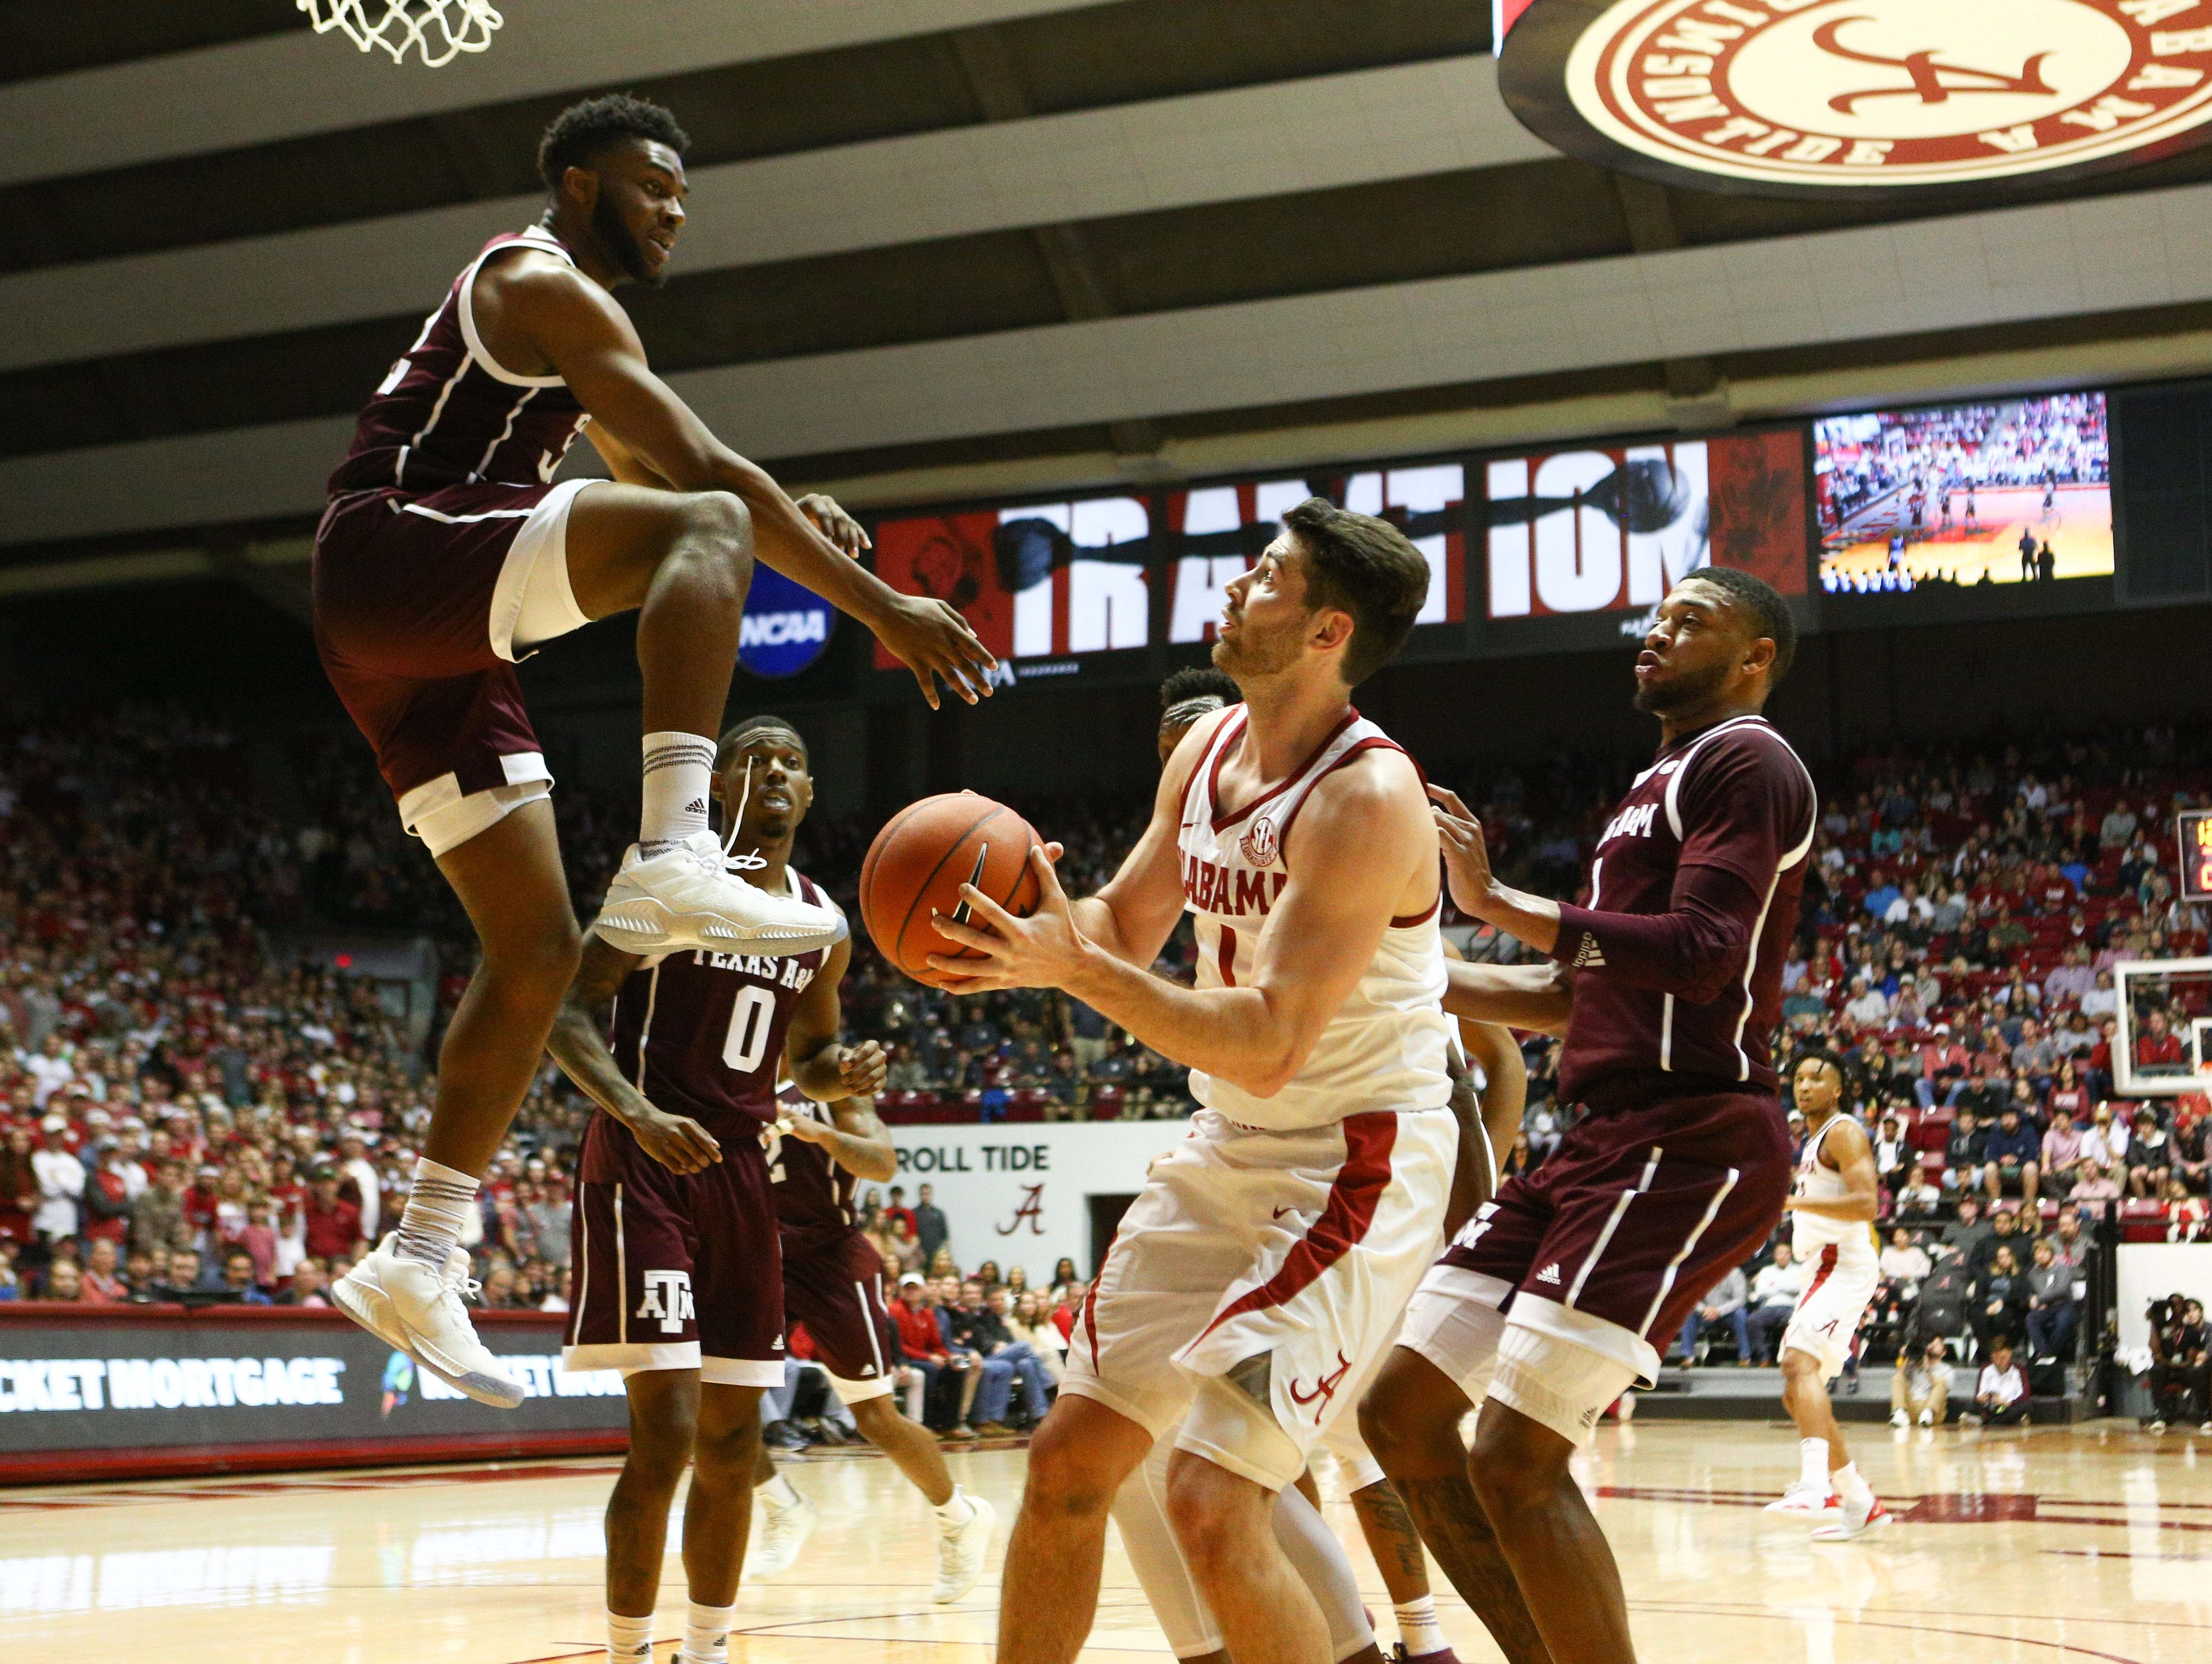 Jan 12, 2019; Tuscaloosa, AL, USA; Texas A&M Aggies forward Josh Nebo (32) attempts to block the shot of Alabama Crimson Tide guard Riley Norris (1) during the second half at Coleman Coliseum. Mandatory Credit: Marvin Gentry-USA TODAY Sports